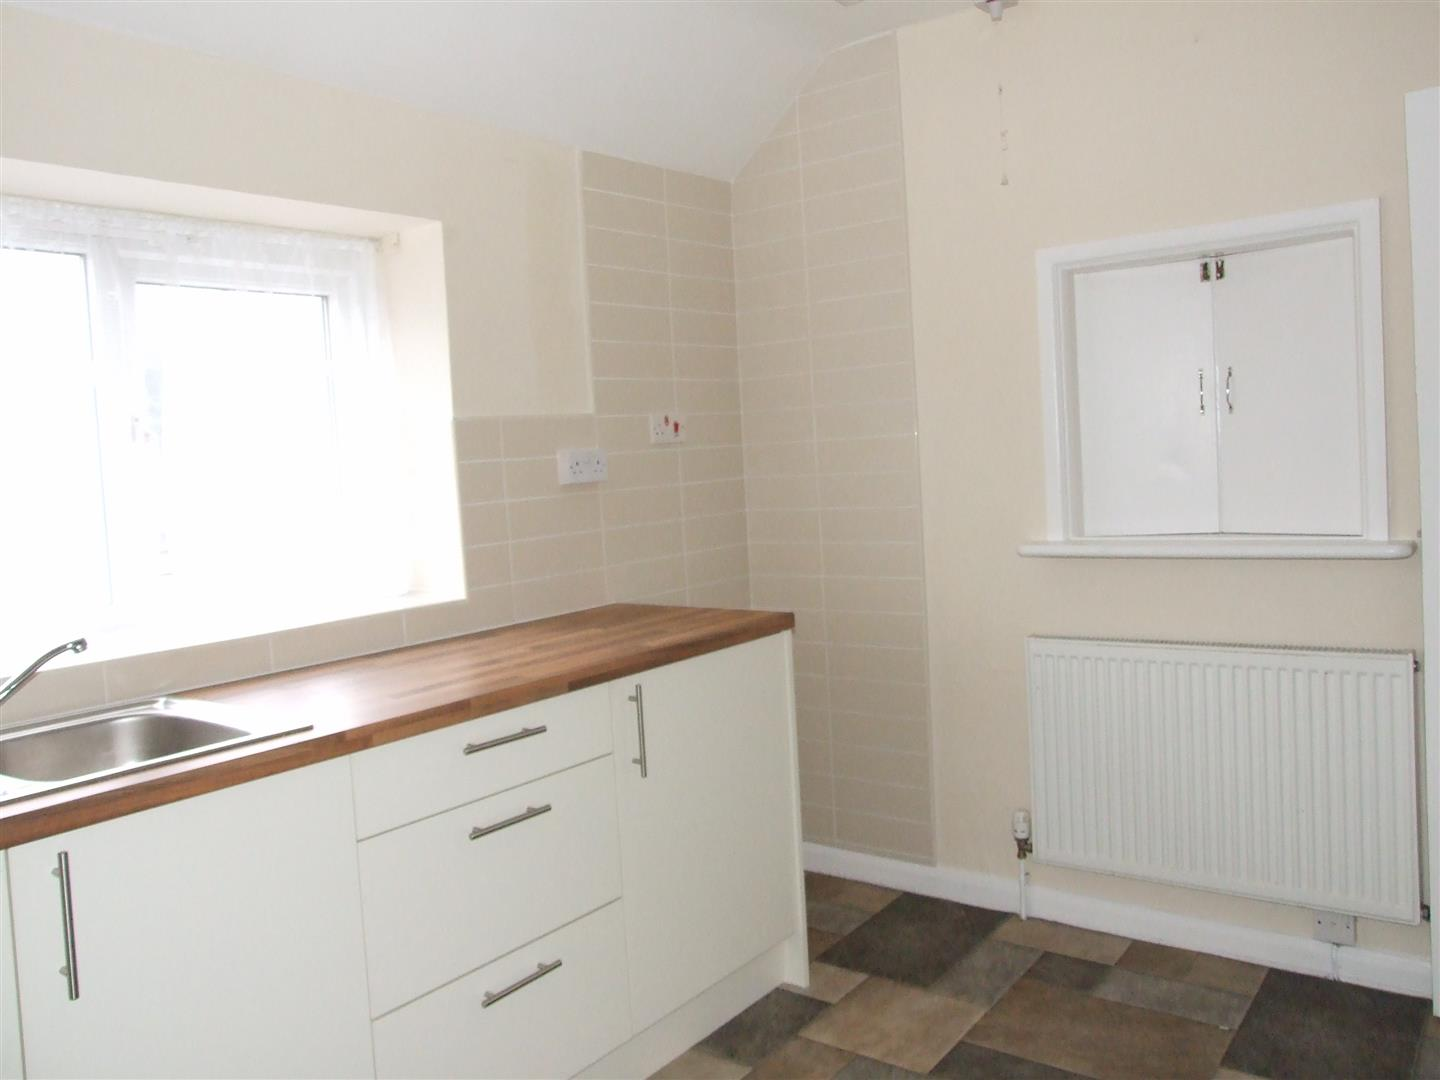 2 bed flat to rent in Sutton Bridge Spalding, PE12 9SF  - Property Image 8